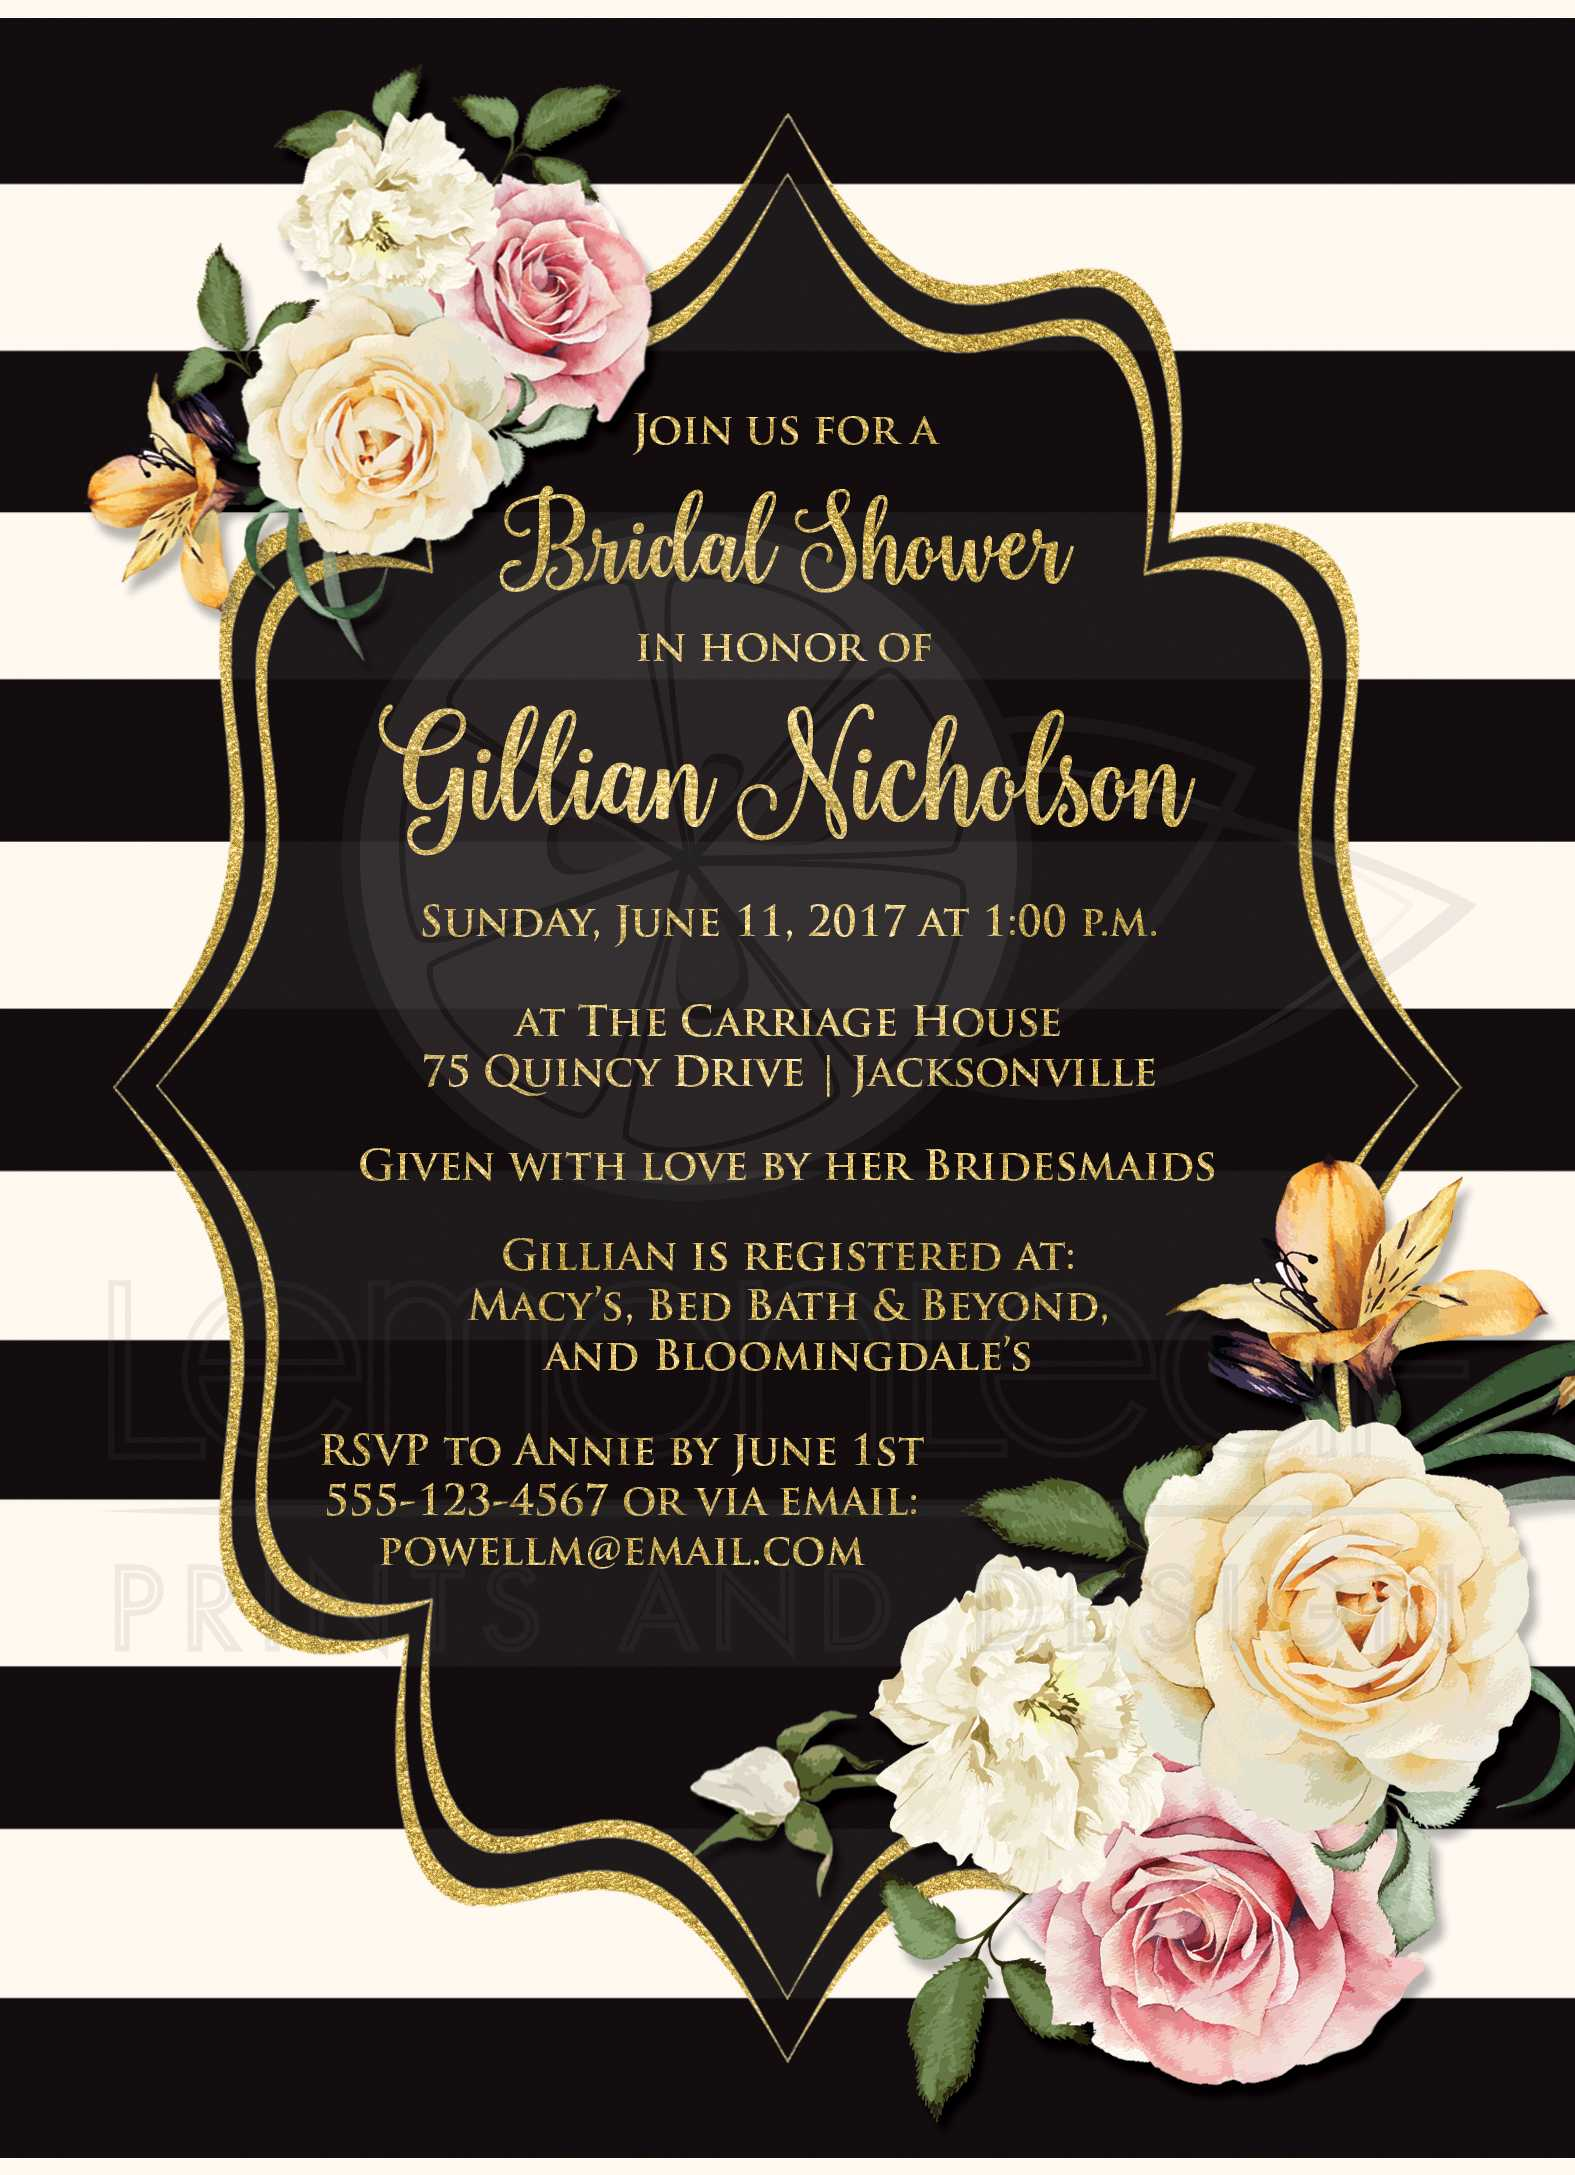 Bridal shower email invitations image collections invitation e invitations bridal shower choice image invitation templates free e invitations bridal shower image collections invitation filmwisefo